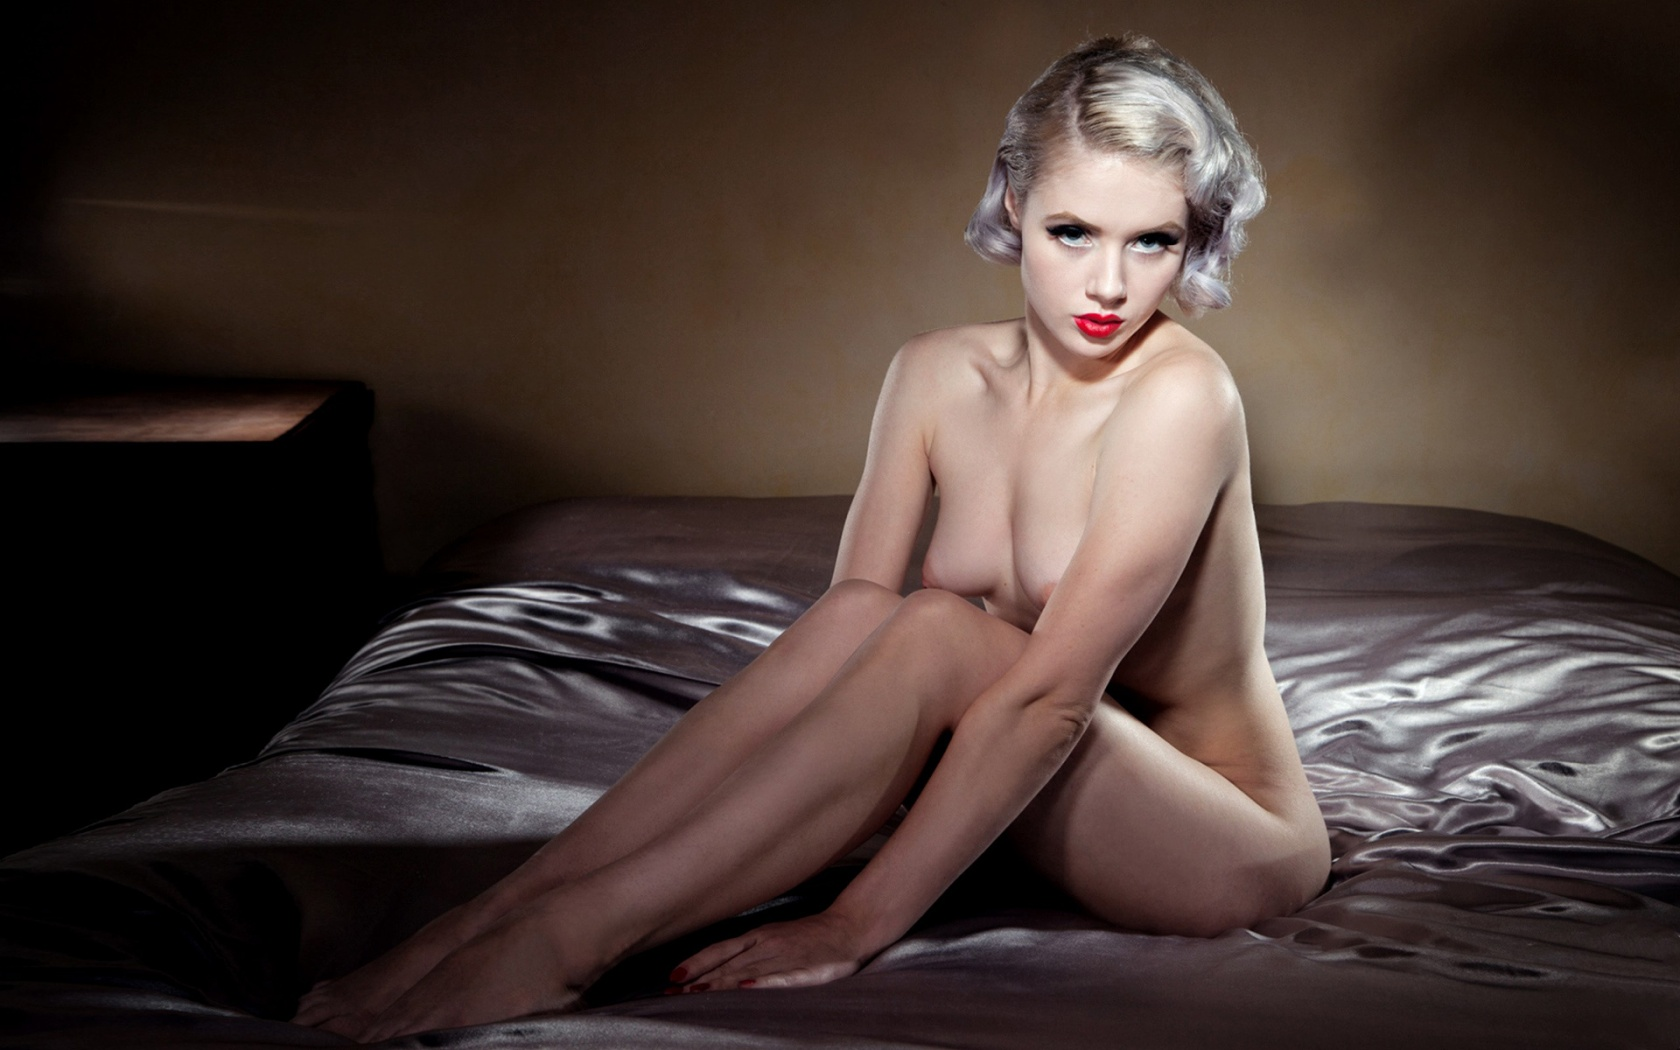 Miss skinny nude sexy pictures